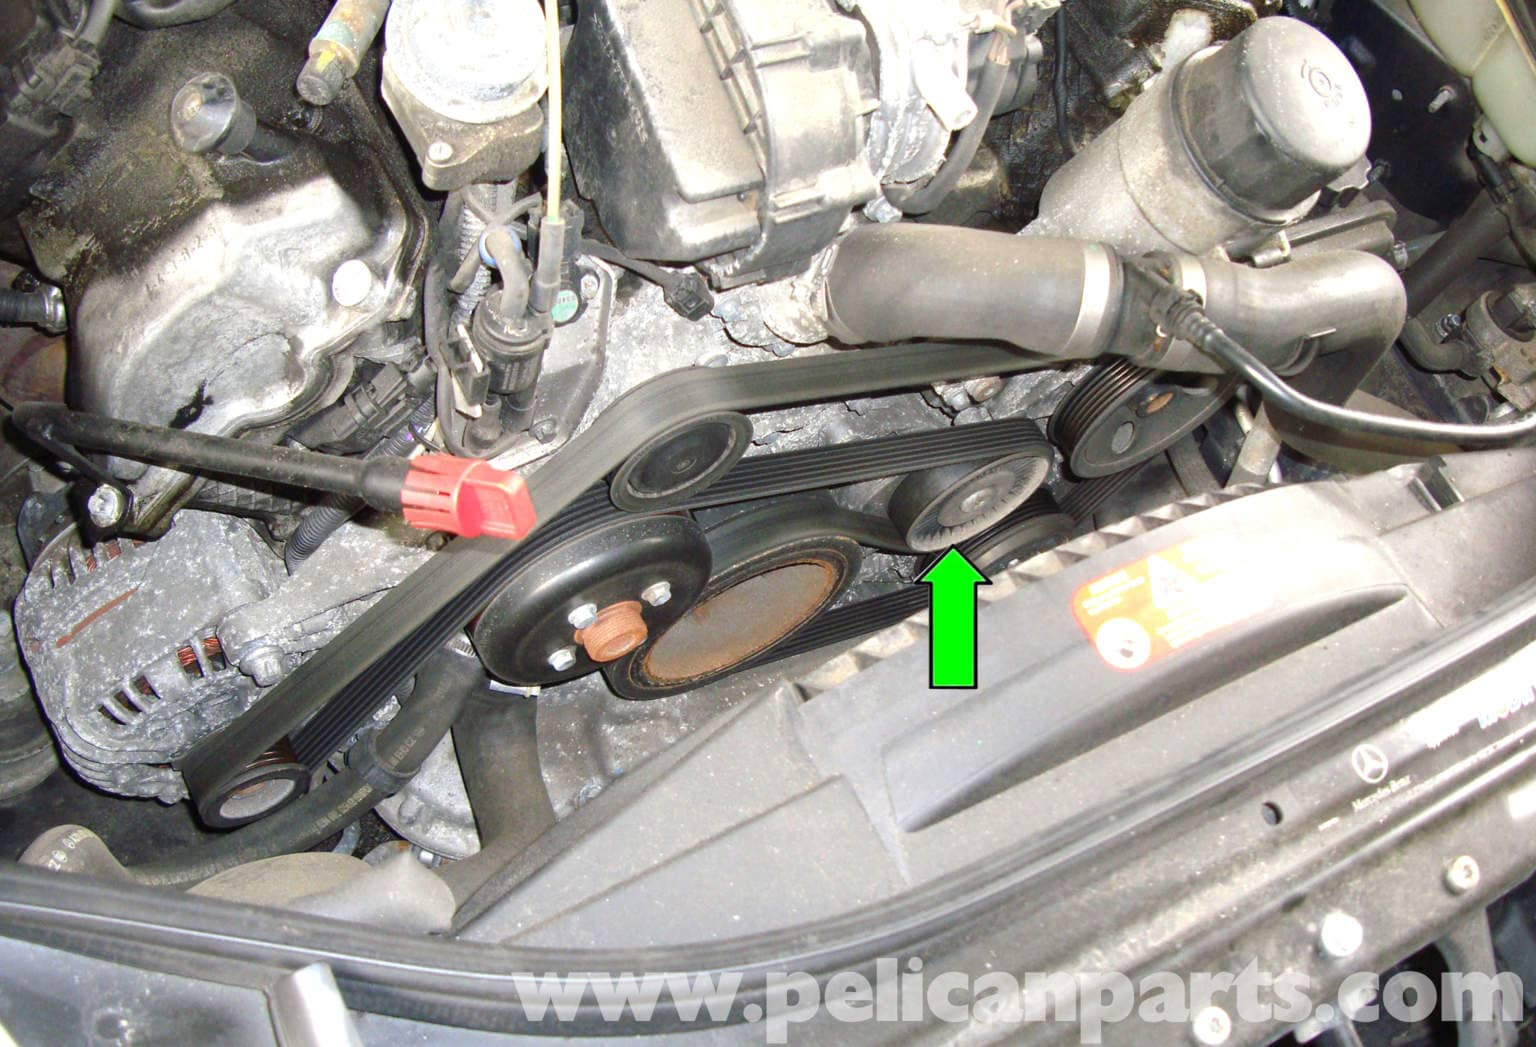 Mercedes benz w211 accessory drive belt replacement 2003 for Mercedes benz engine number check